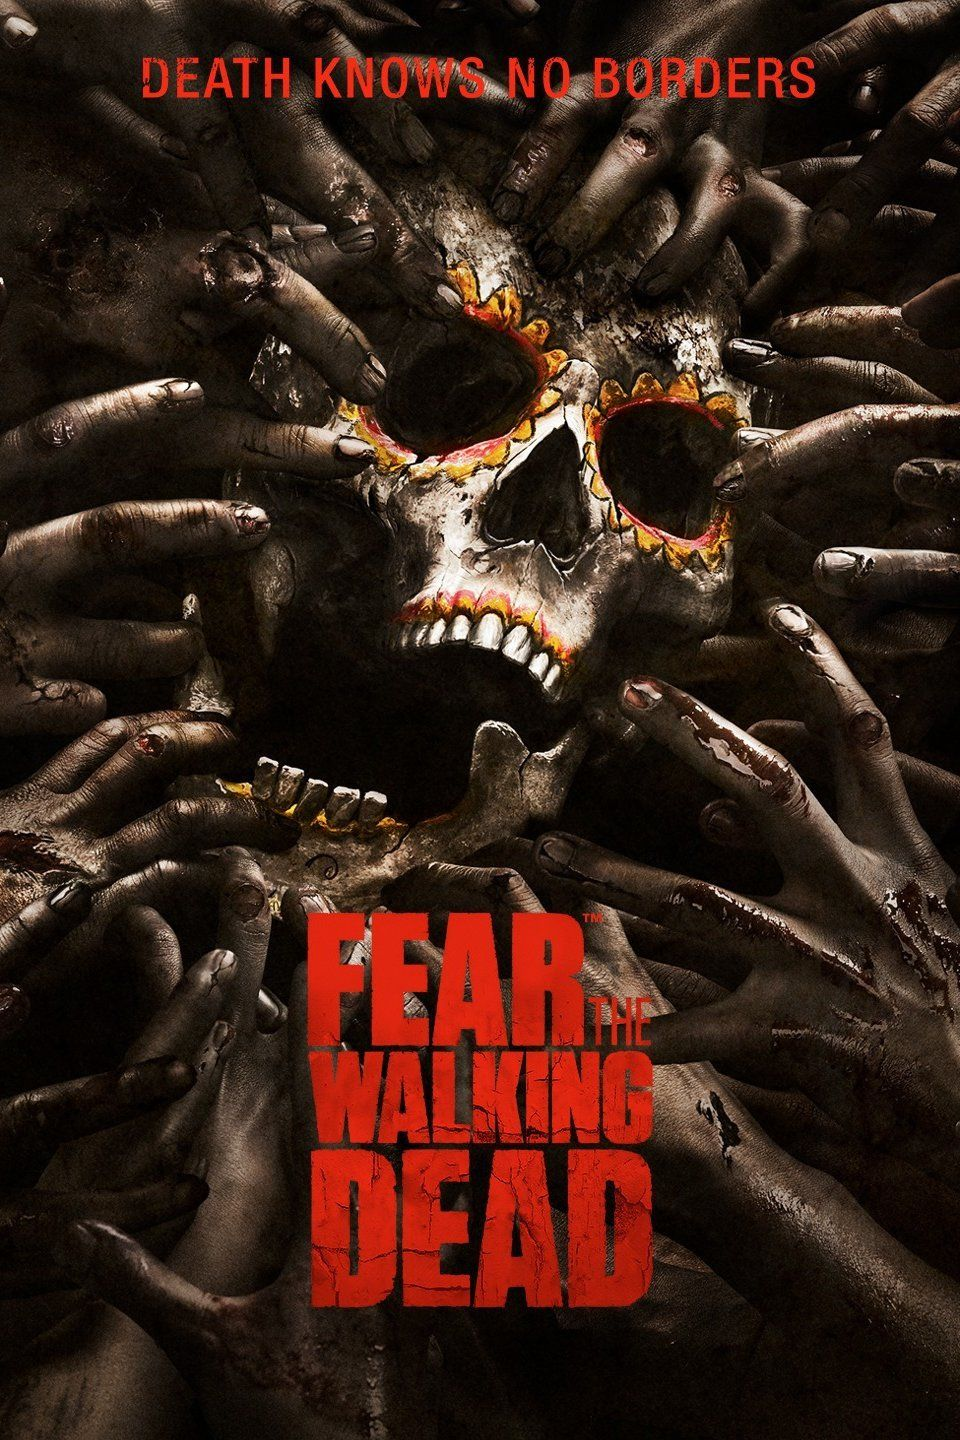 resume Walking Dead Resumes crazy eddies motie news zombies return as fear the walking dead resumes